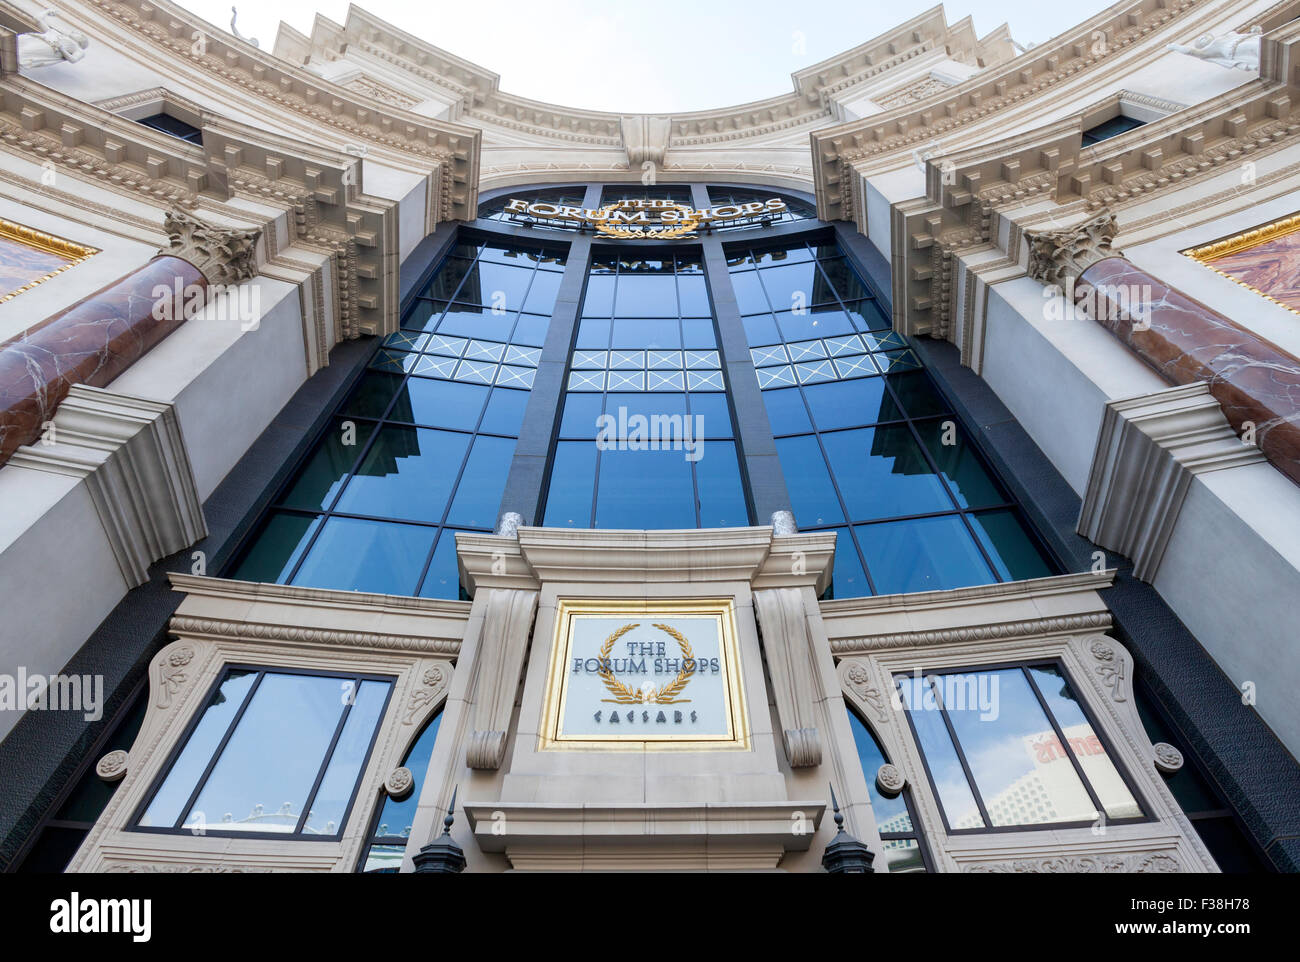 A view of the entrance to The Forum Shops, Caesars Palace, Las Vegas, Nevada. - Stock Image